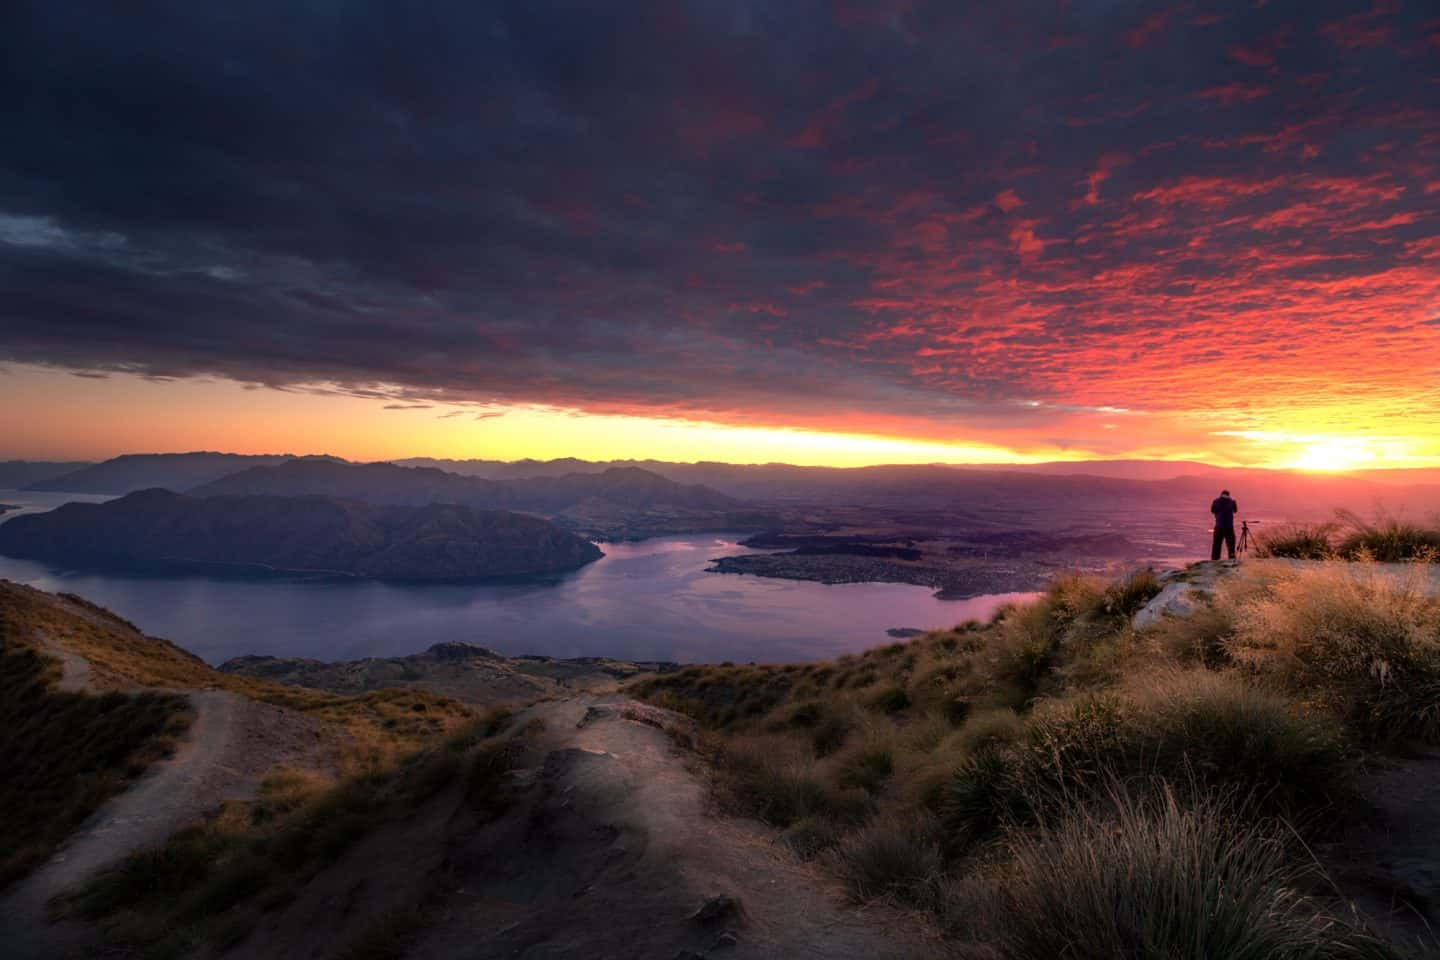 Sunrise has to be the best time of day to visit Roys Peak for those willing to hike in the dark!